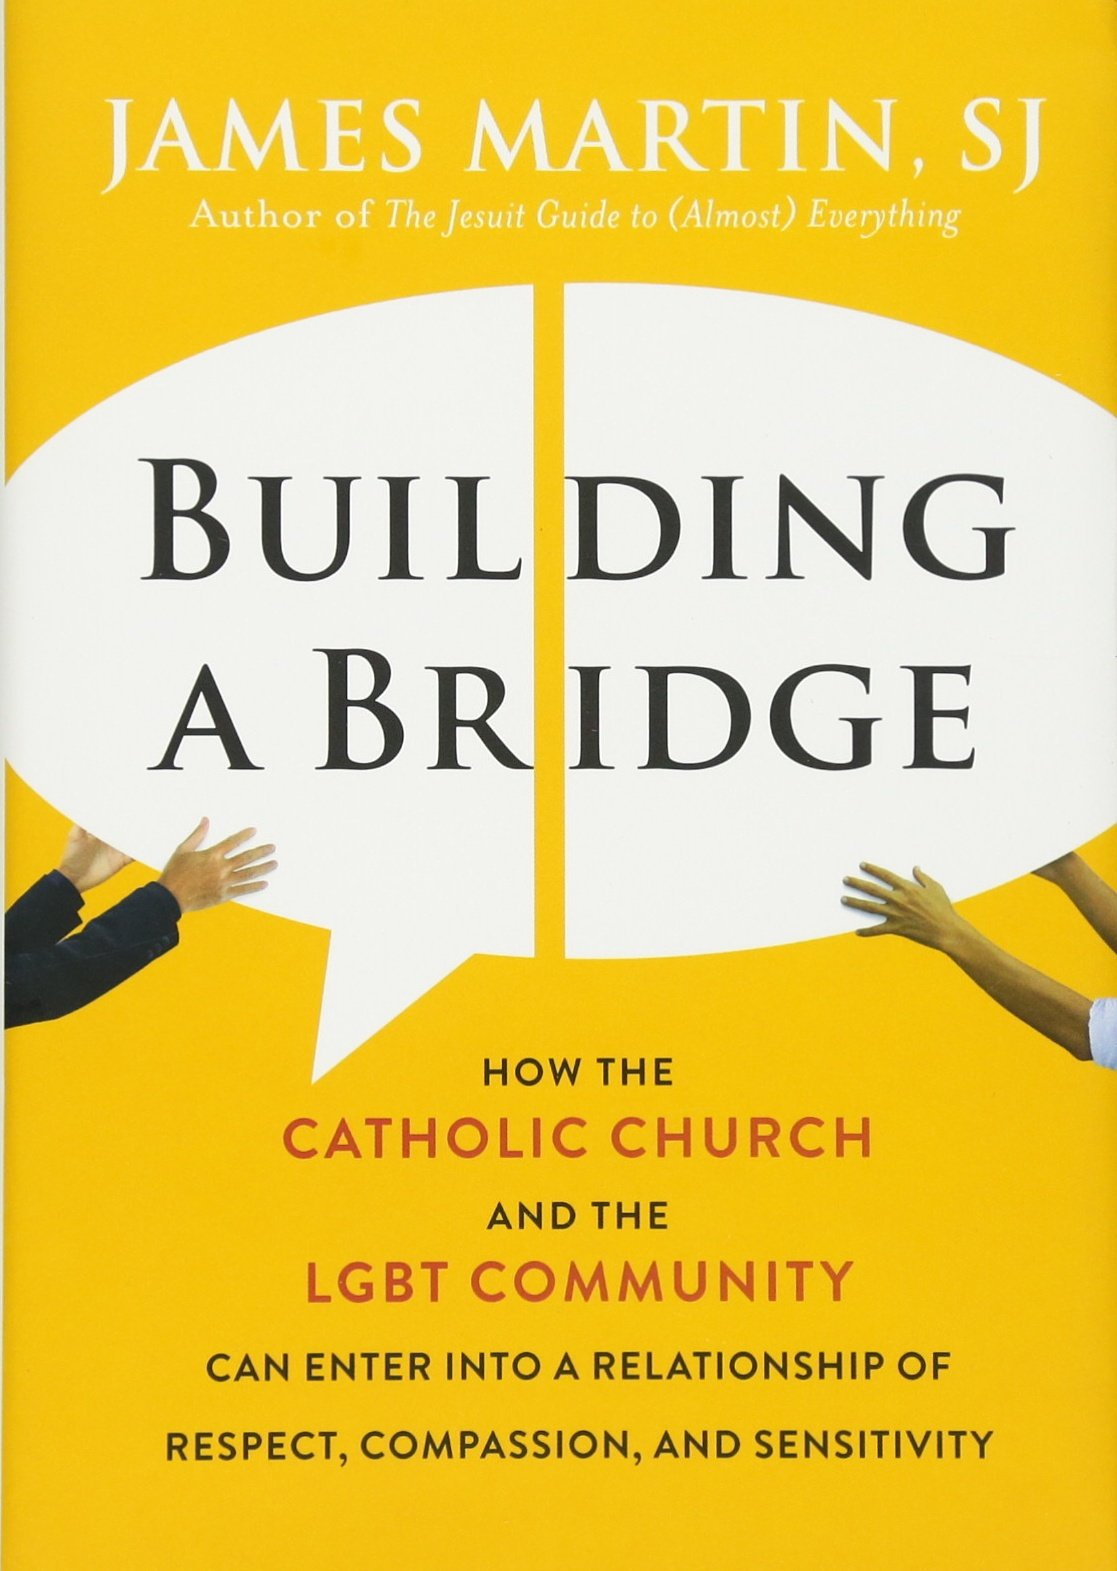 Image result for Building A Bridge: How The Catholic Church and The LGBT Community Can Enter Into A Relationship Of Respect, Compassion, And Sensitivity